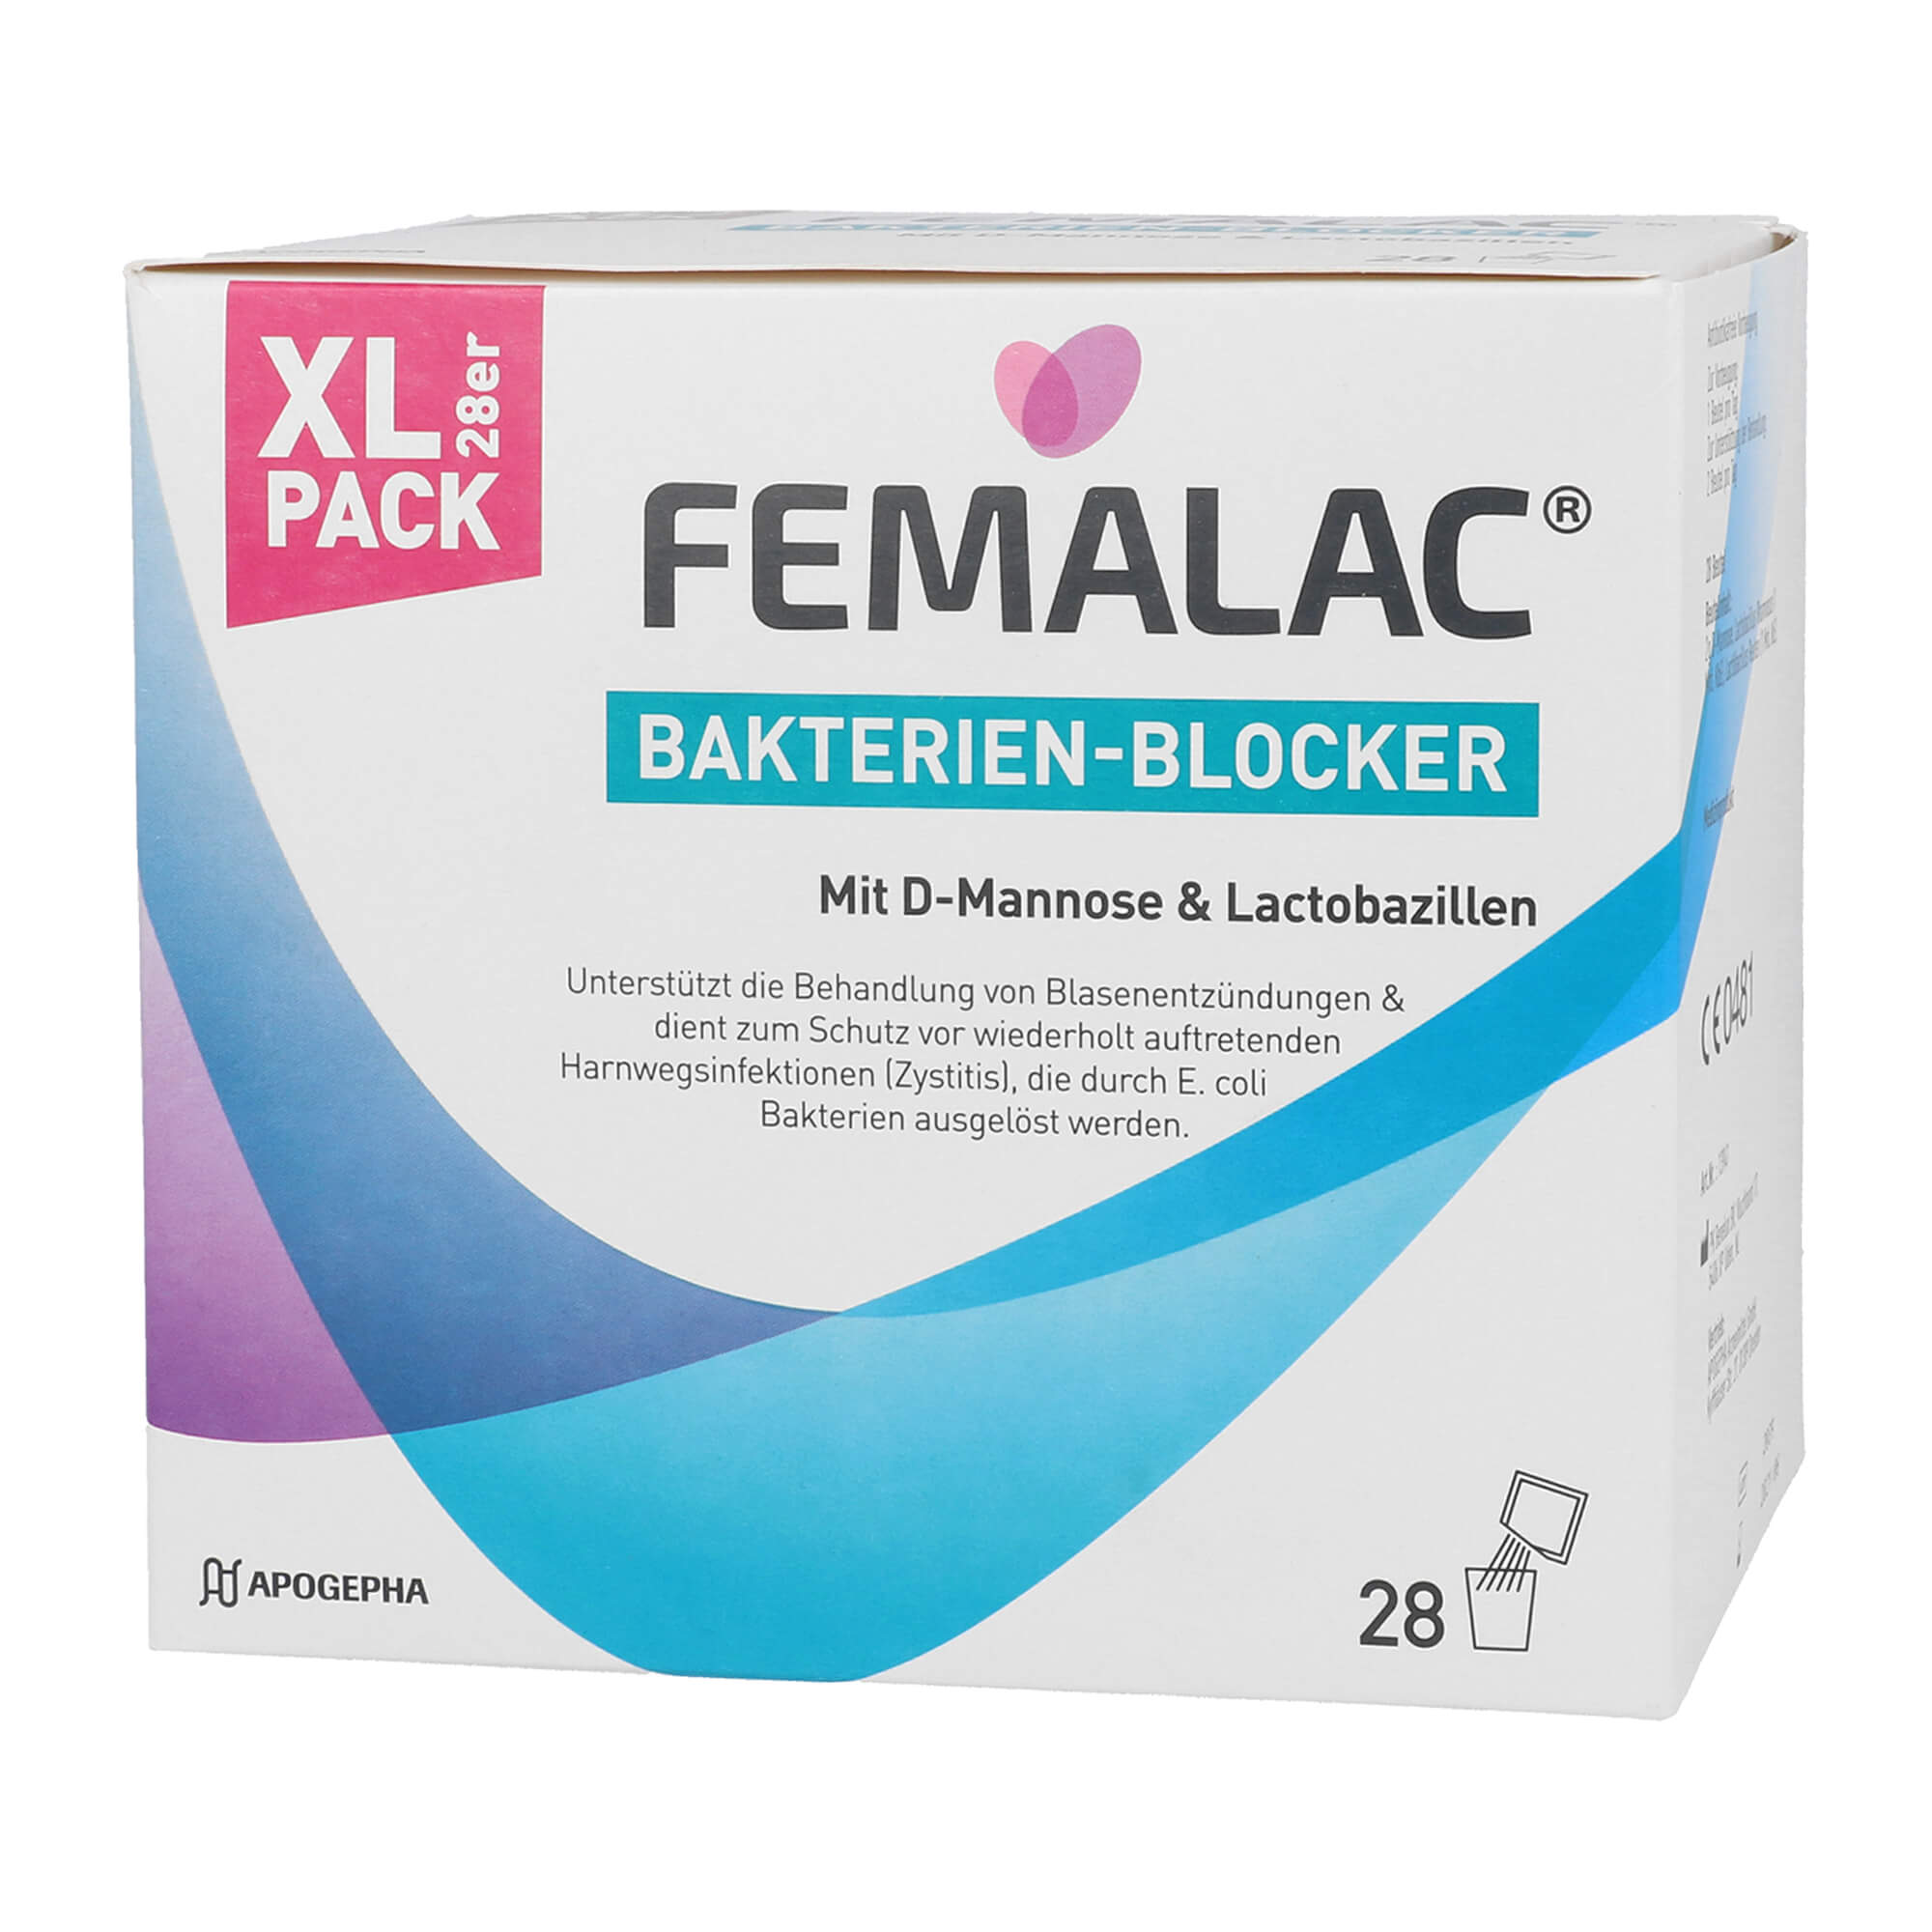 FEMALAC Bakterien-Blocker Pulver